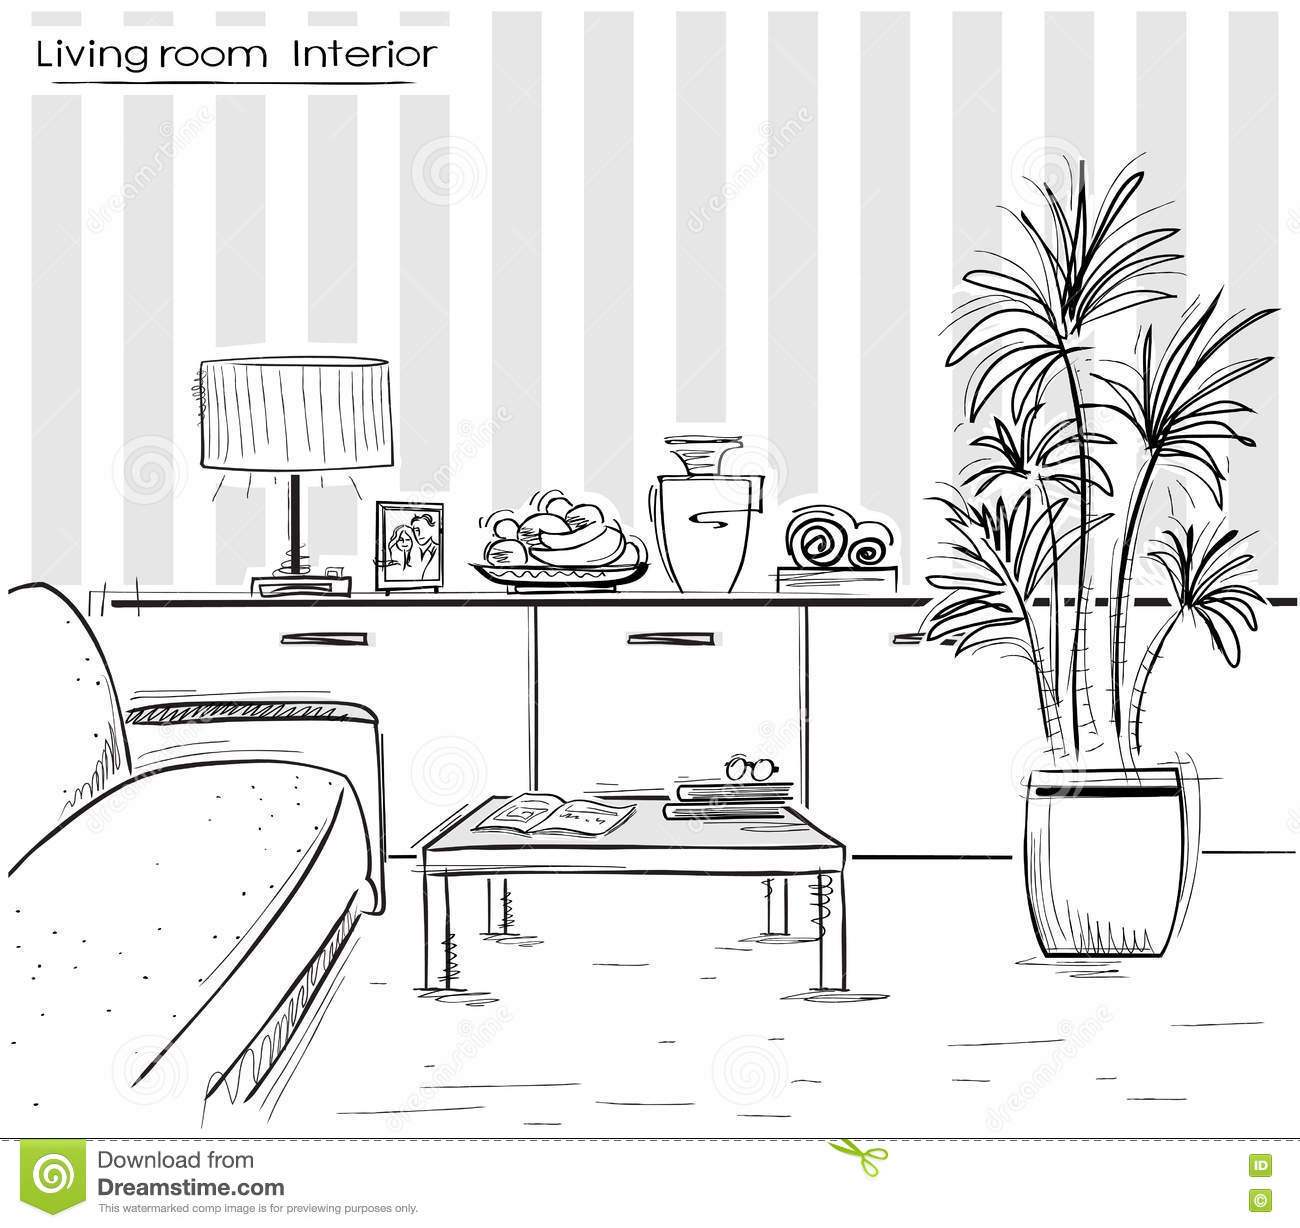 Living room drawing design - Interior Of Living Room Design Vector Black Hand Drawing Illust